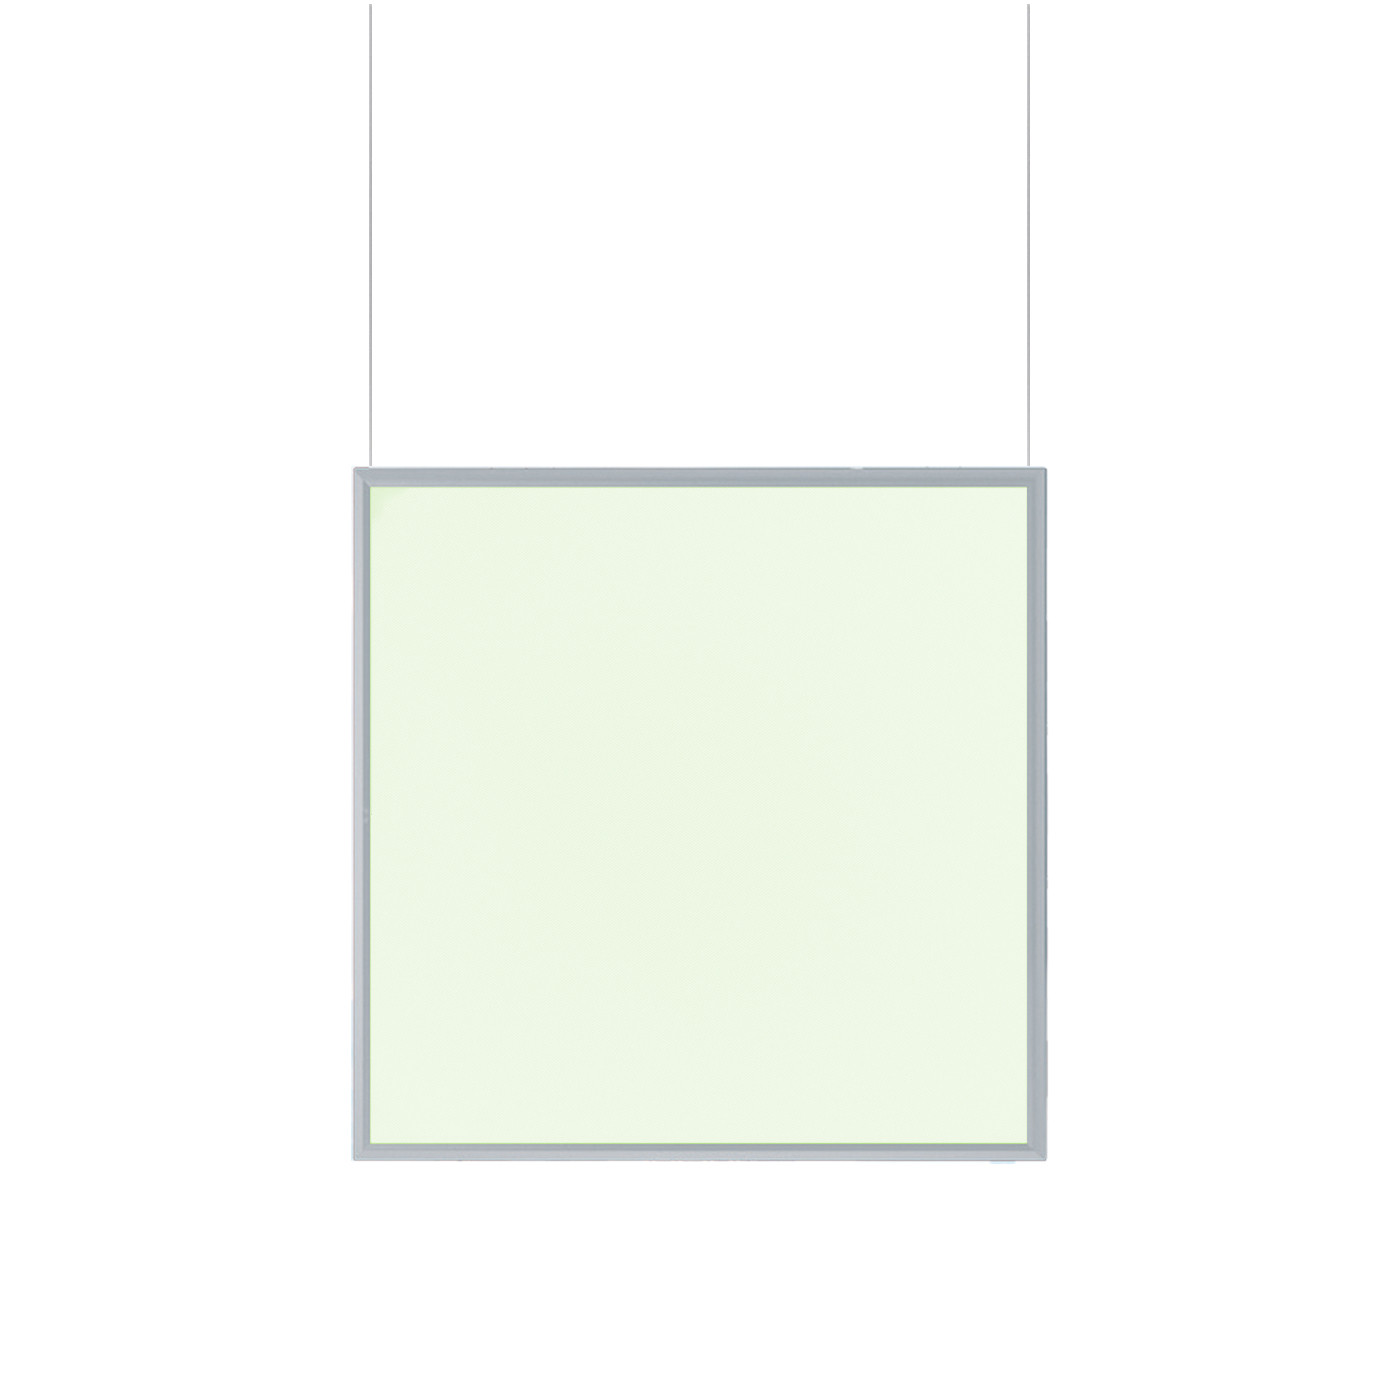 Artemide Discovery Space Square RGBW